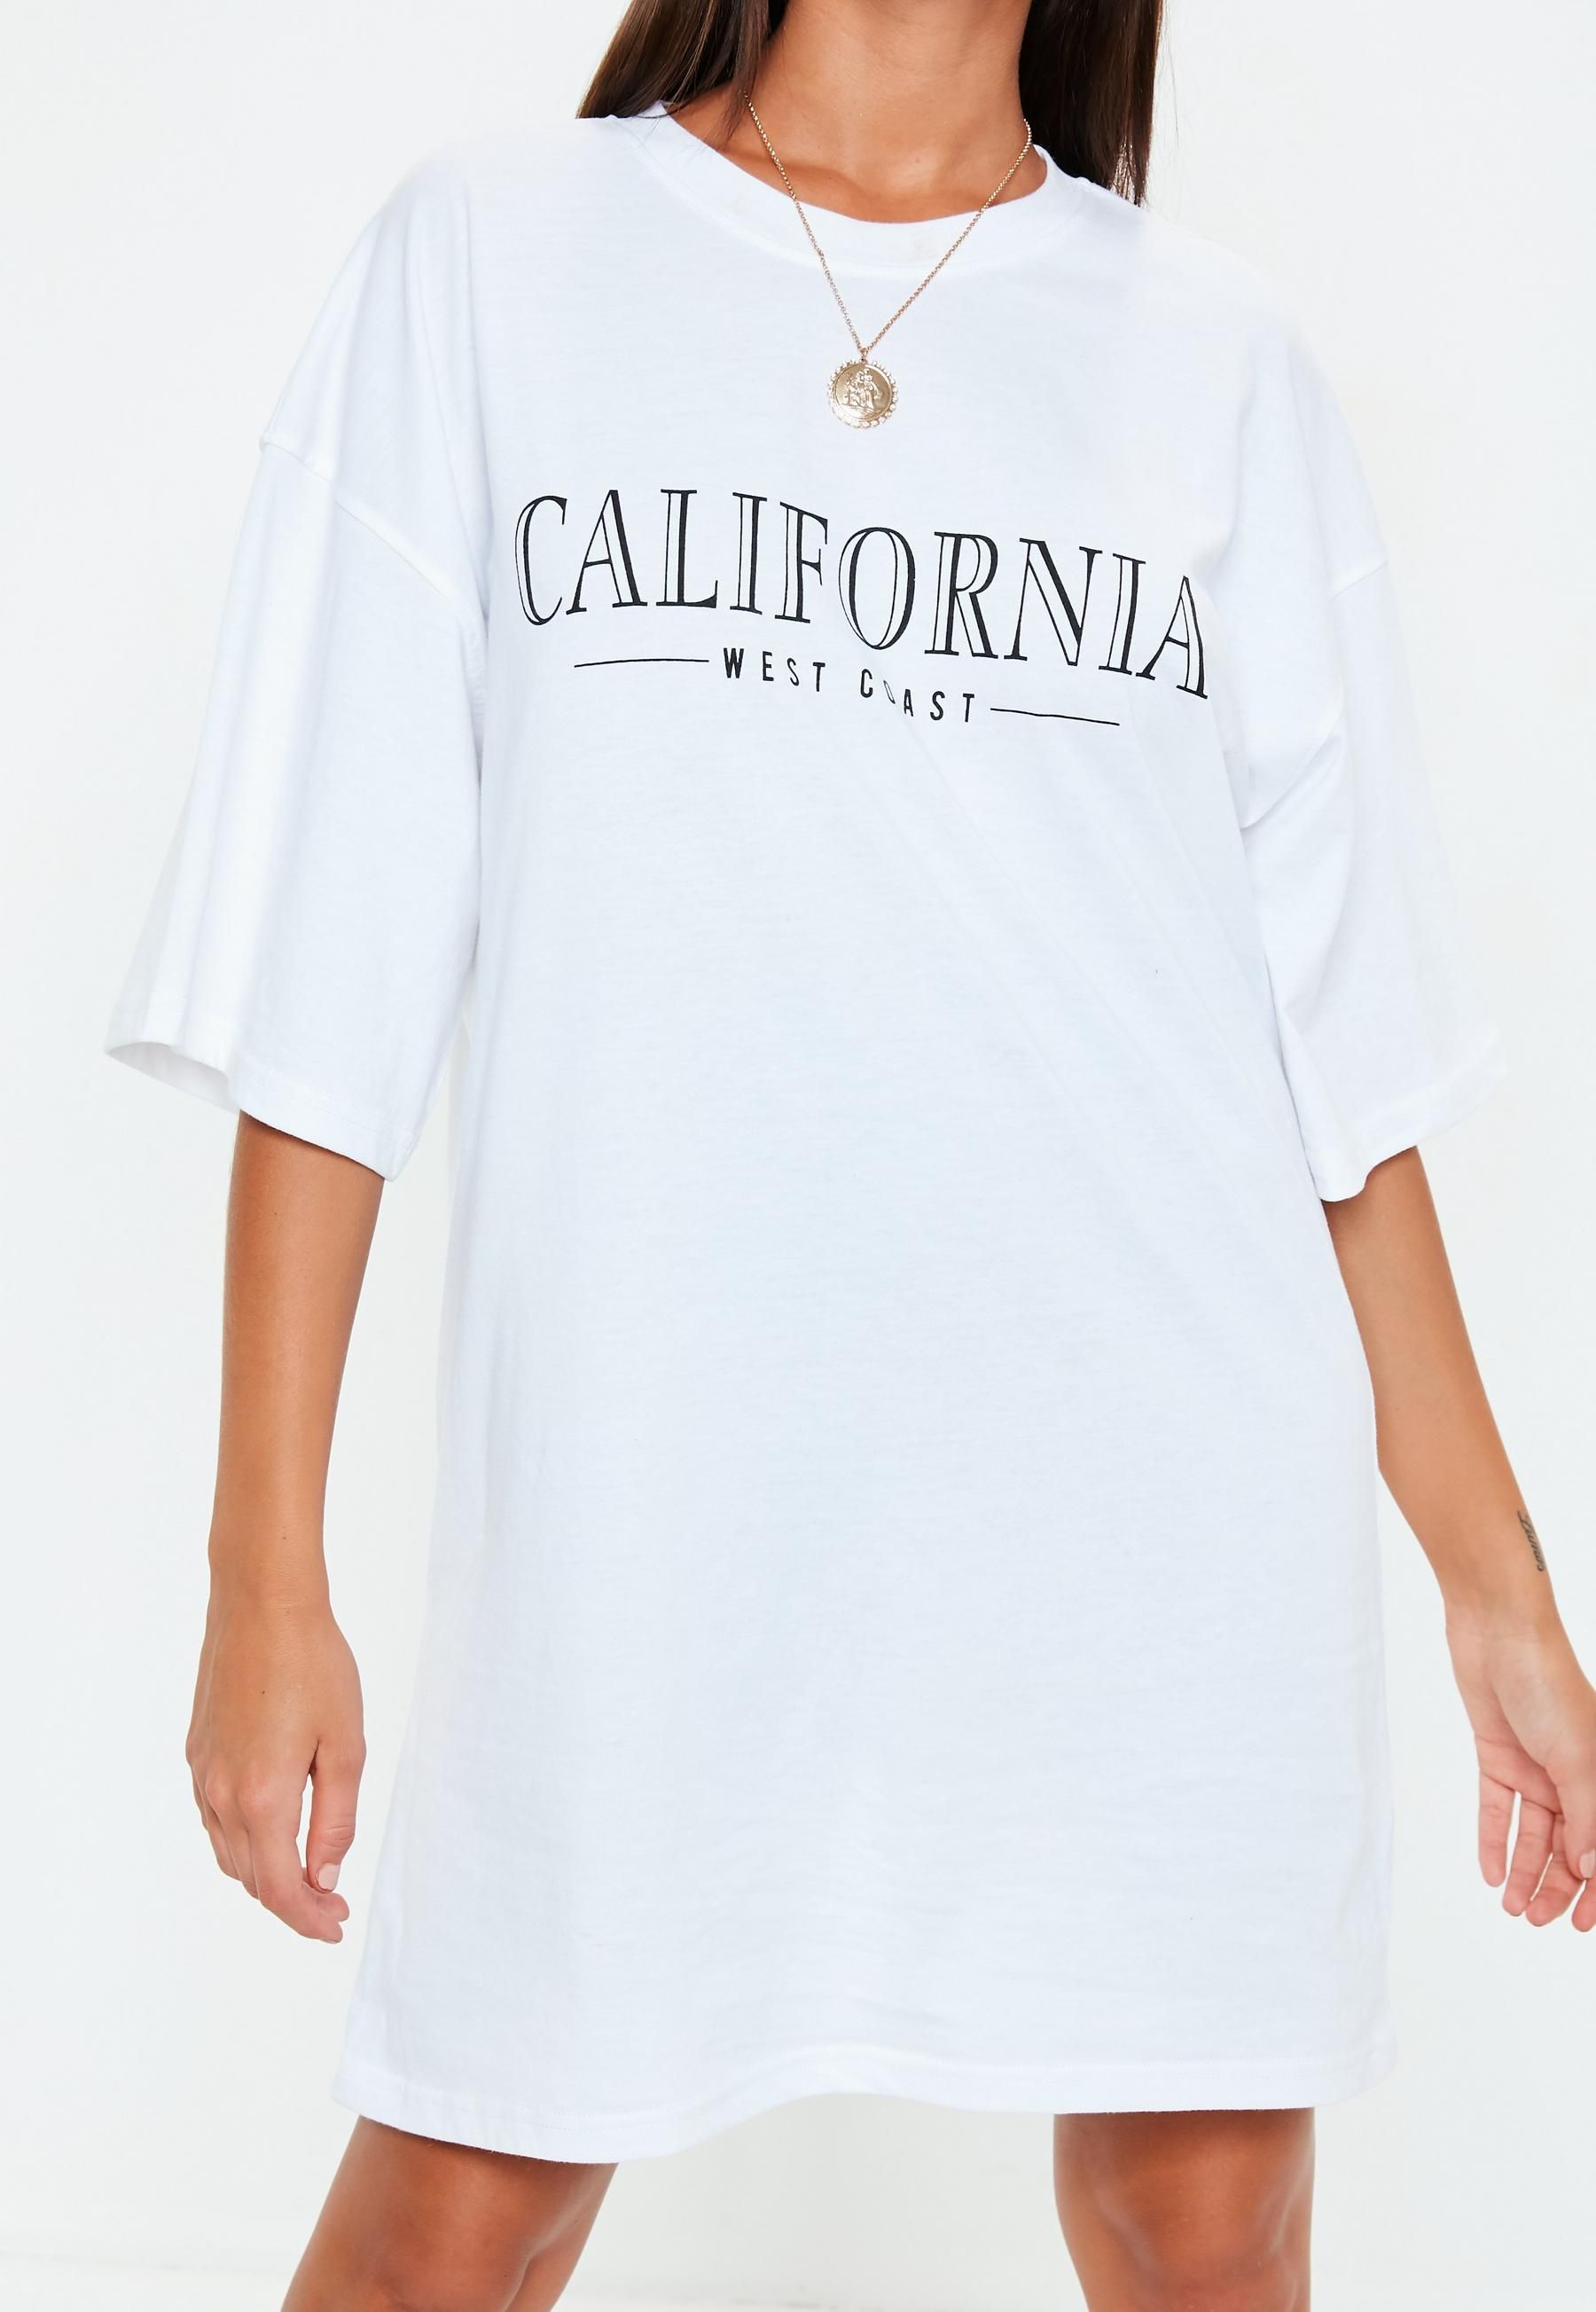 137401fbf98a White Oversized California Graphic T Shirt Dress | Missguided ...